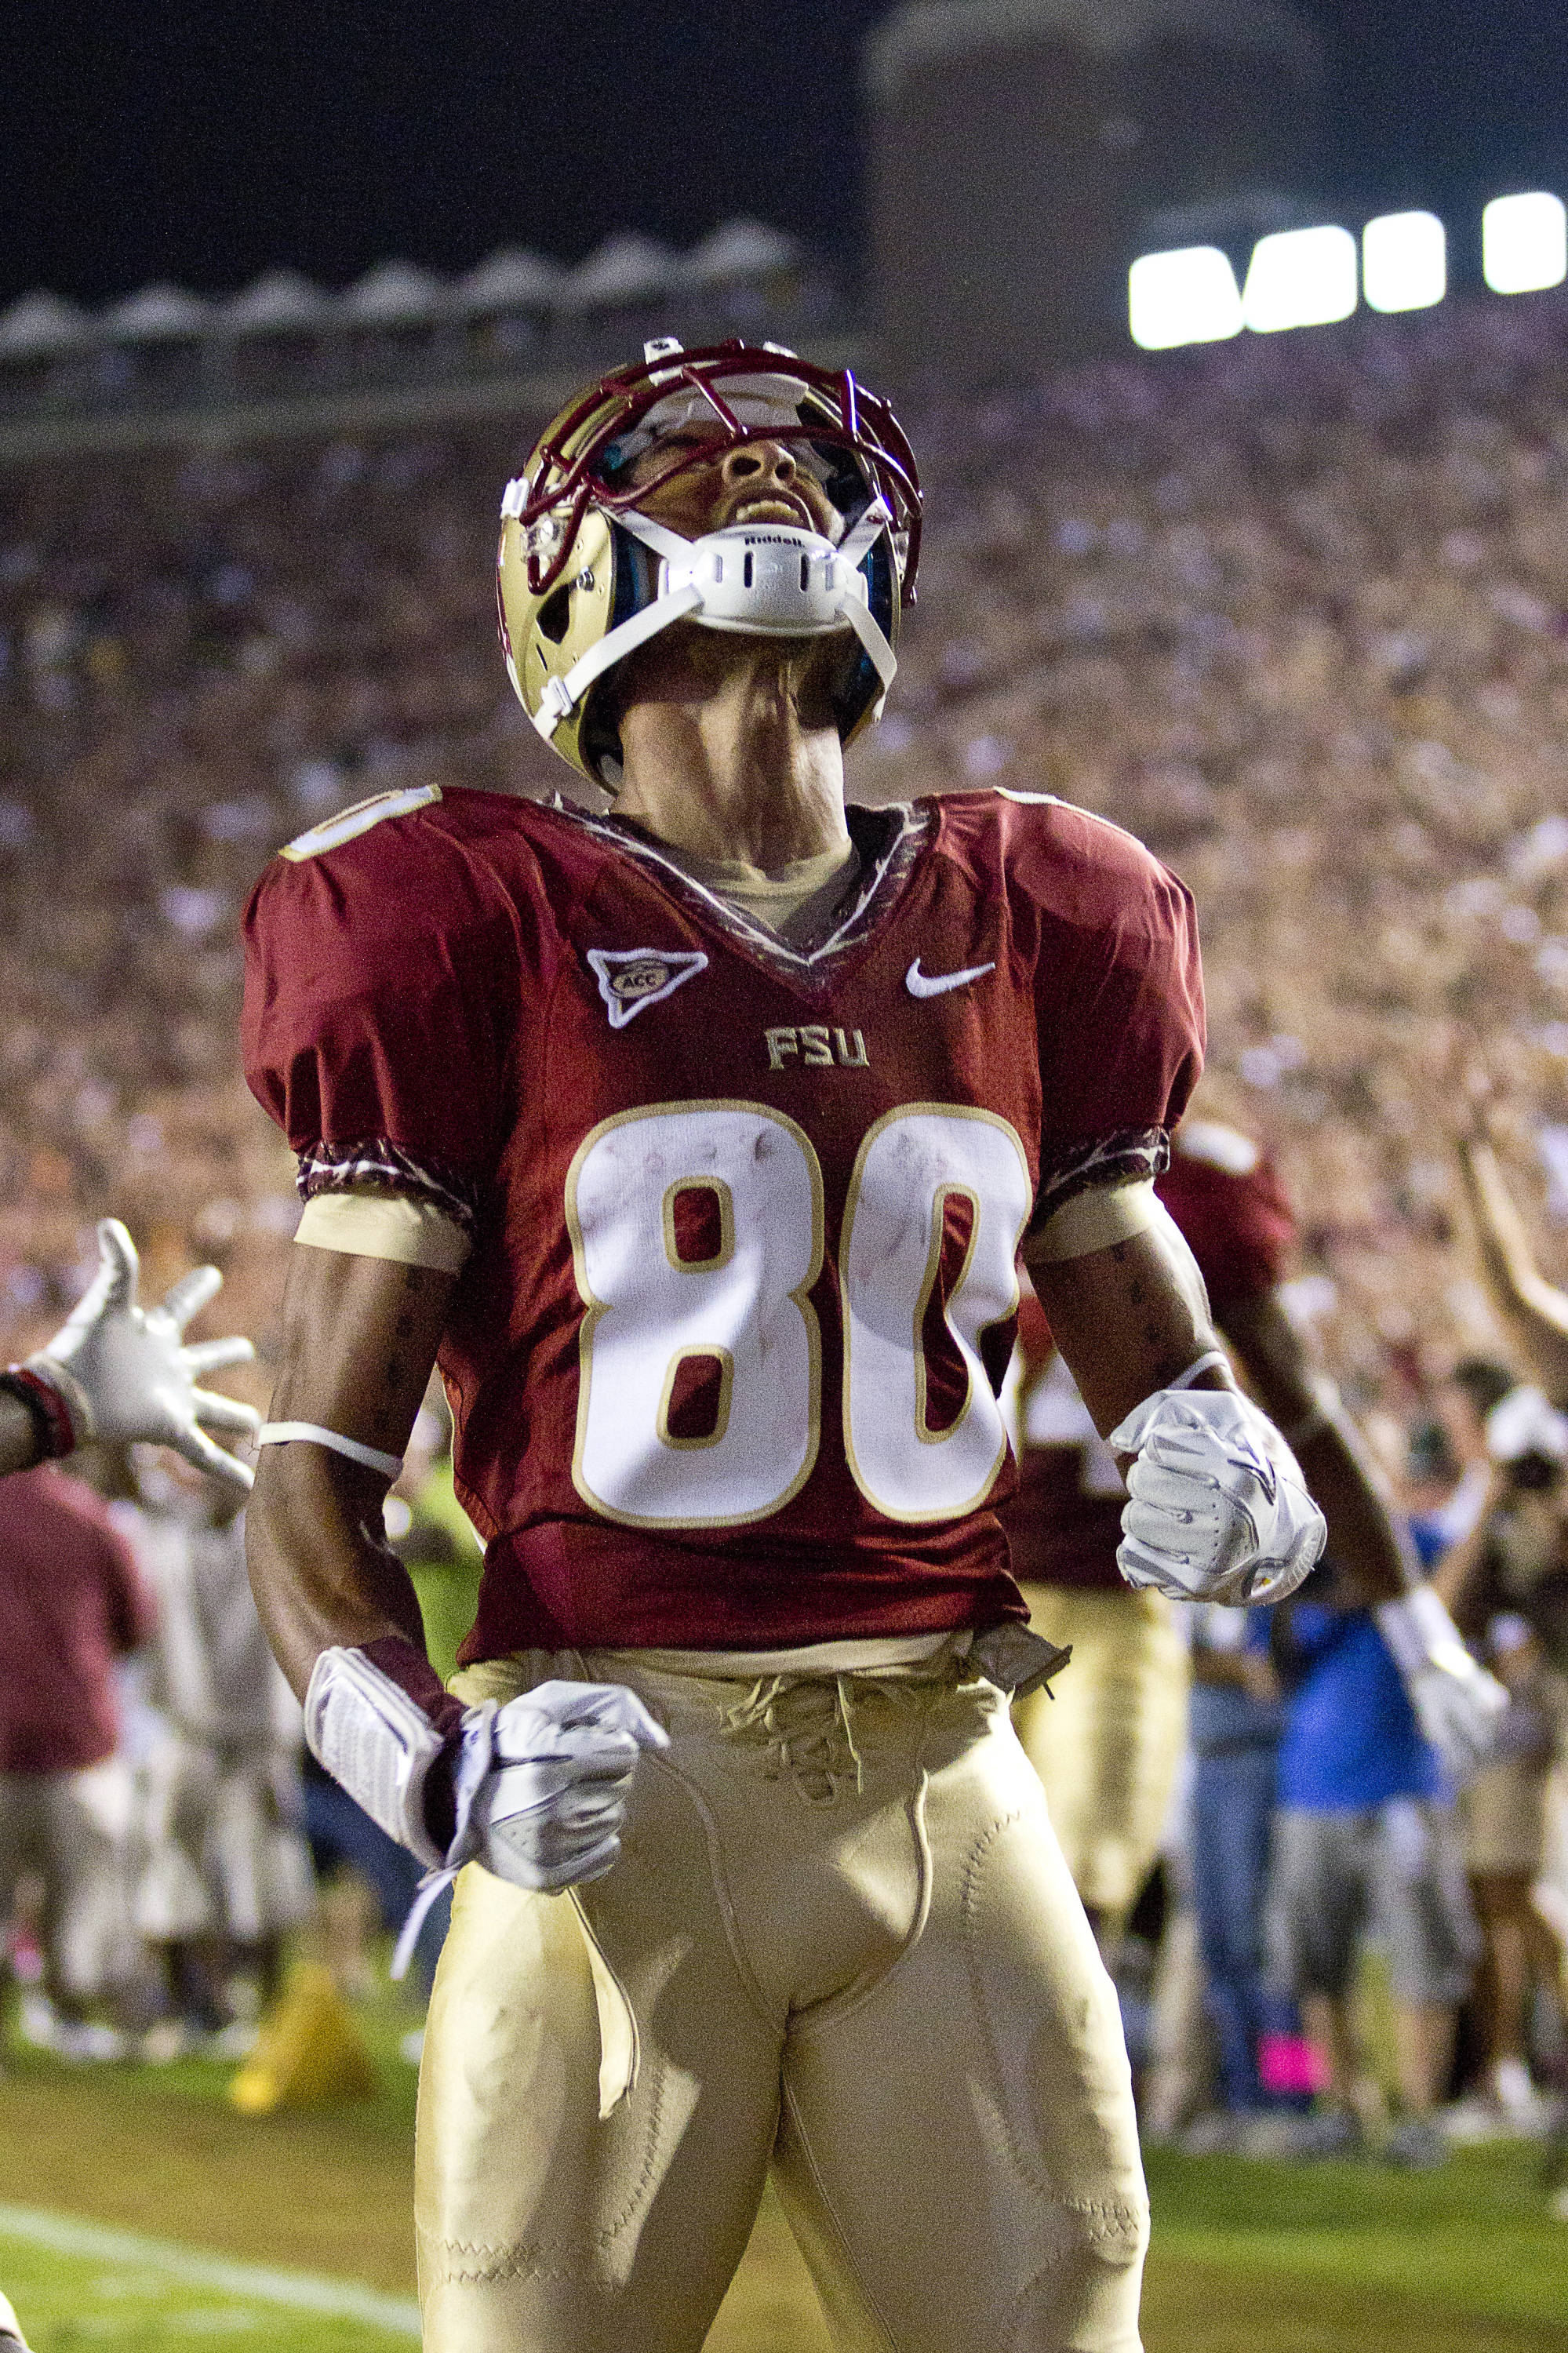 Rashad Greene (80) reacts after scoring FSU's only touchdown in the game against Oklahoma on September 17, 2011.